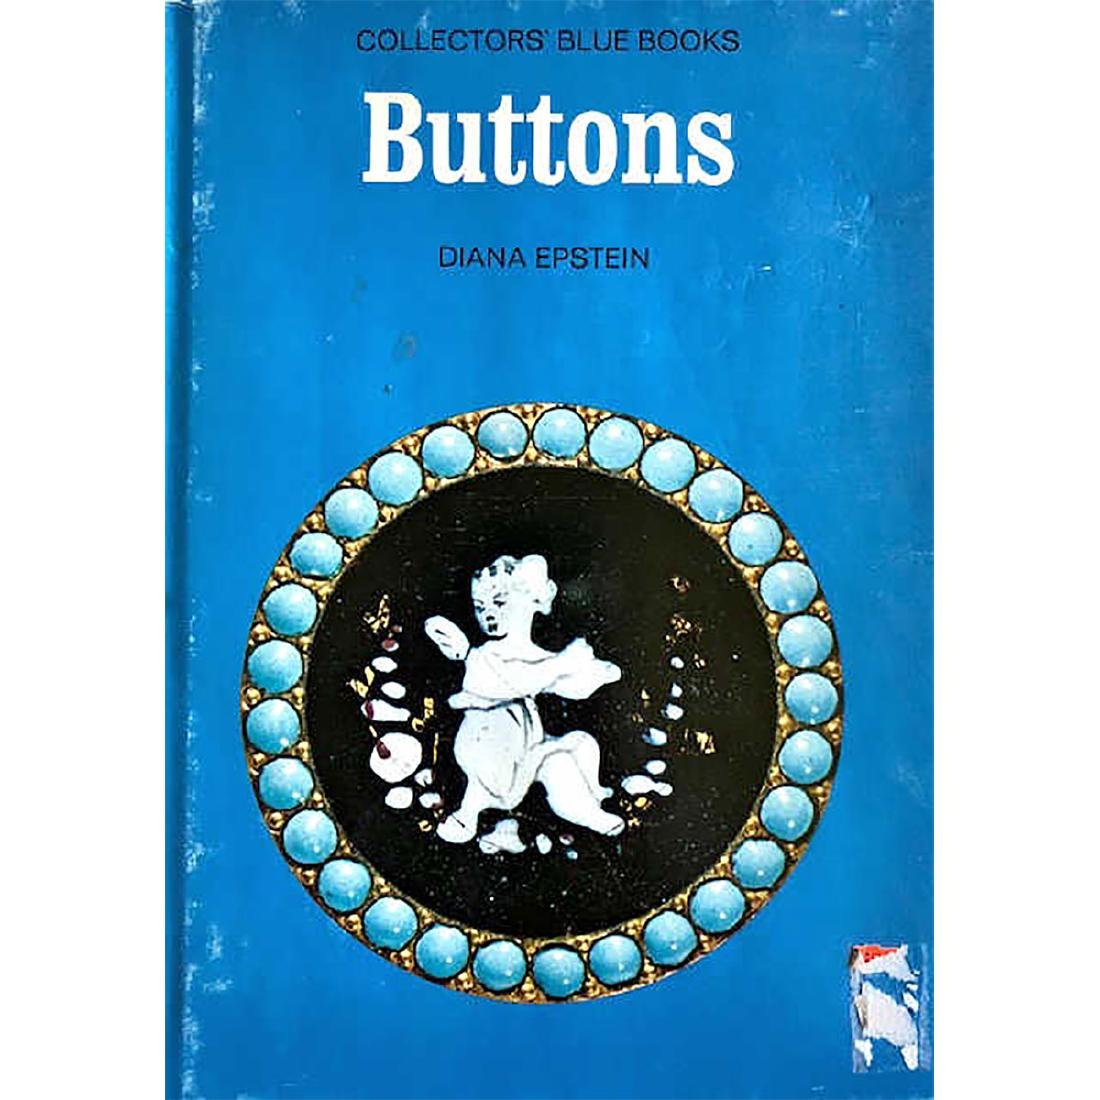 """2 BUTTON BOOKS INCLUDING """"BUTTONS"""" BY EPSTEIN"""